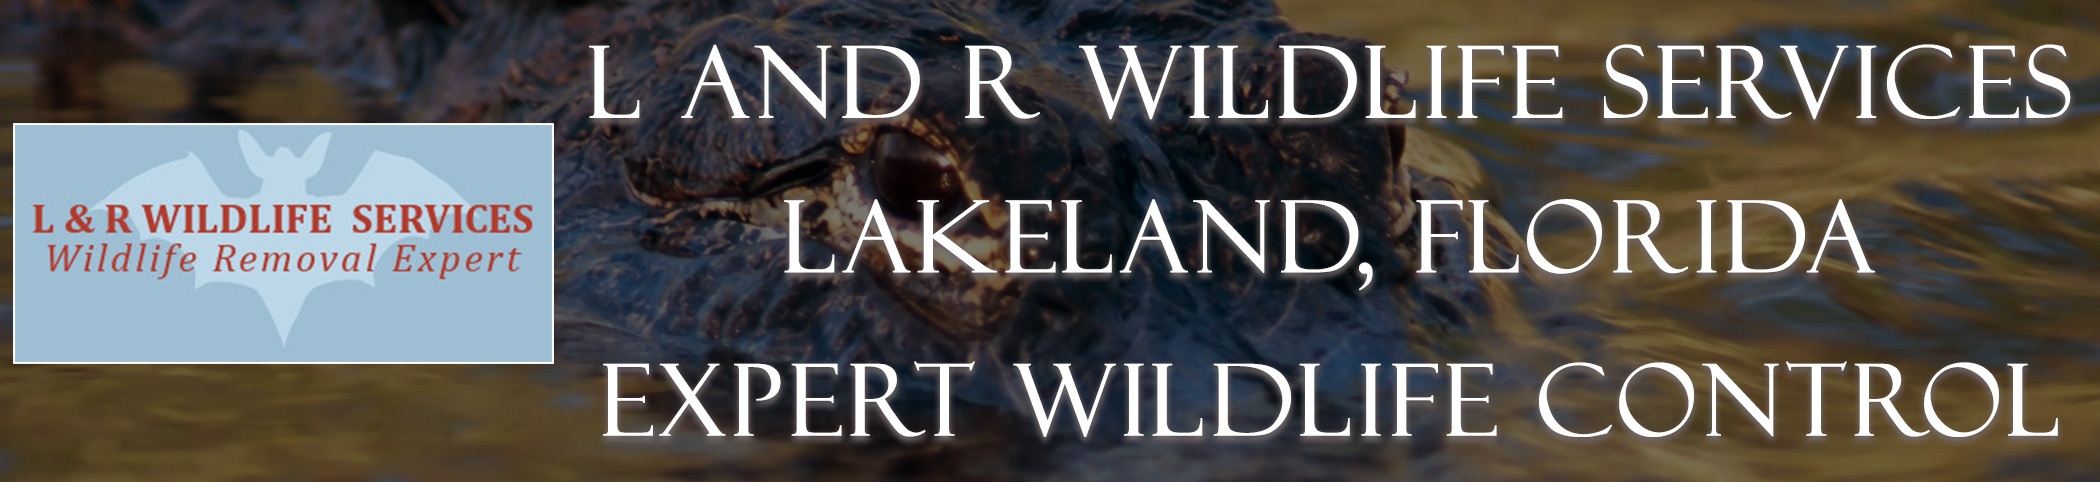 L_and_R_Wildlife_Services_lakeland_florida_header